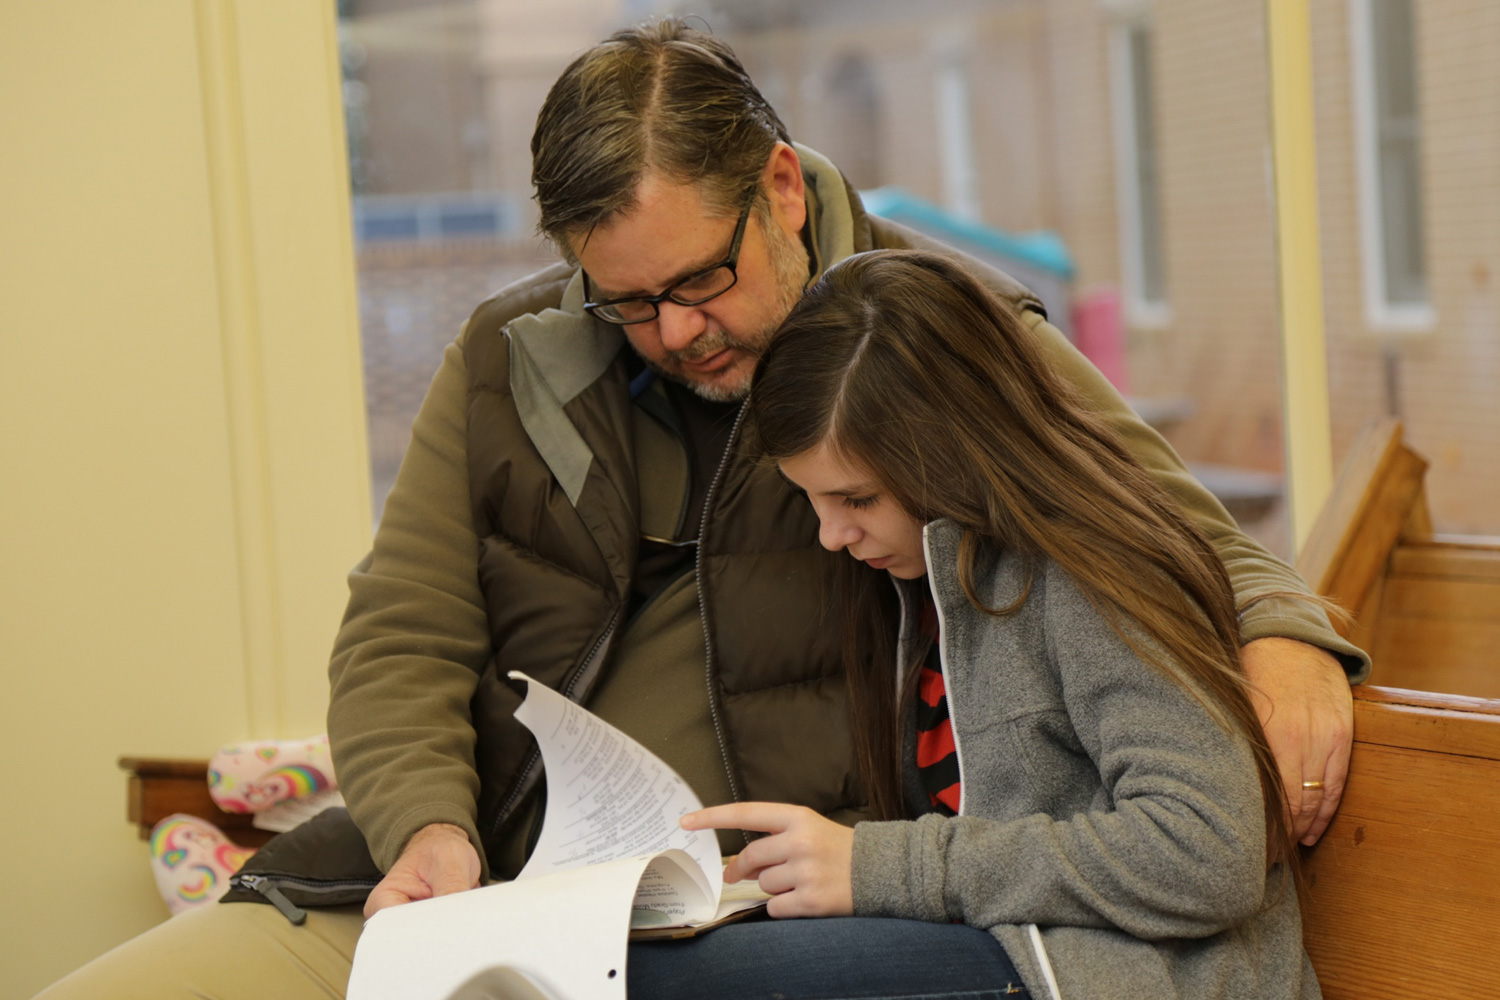 A father and daughter share time together while serving a prayer ministry.